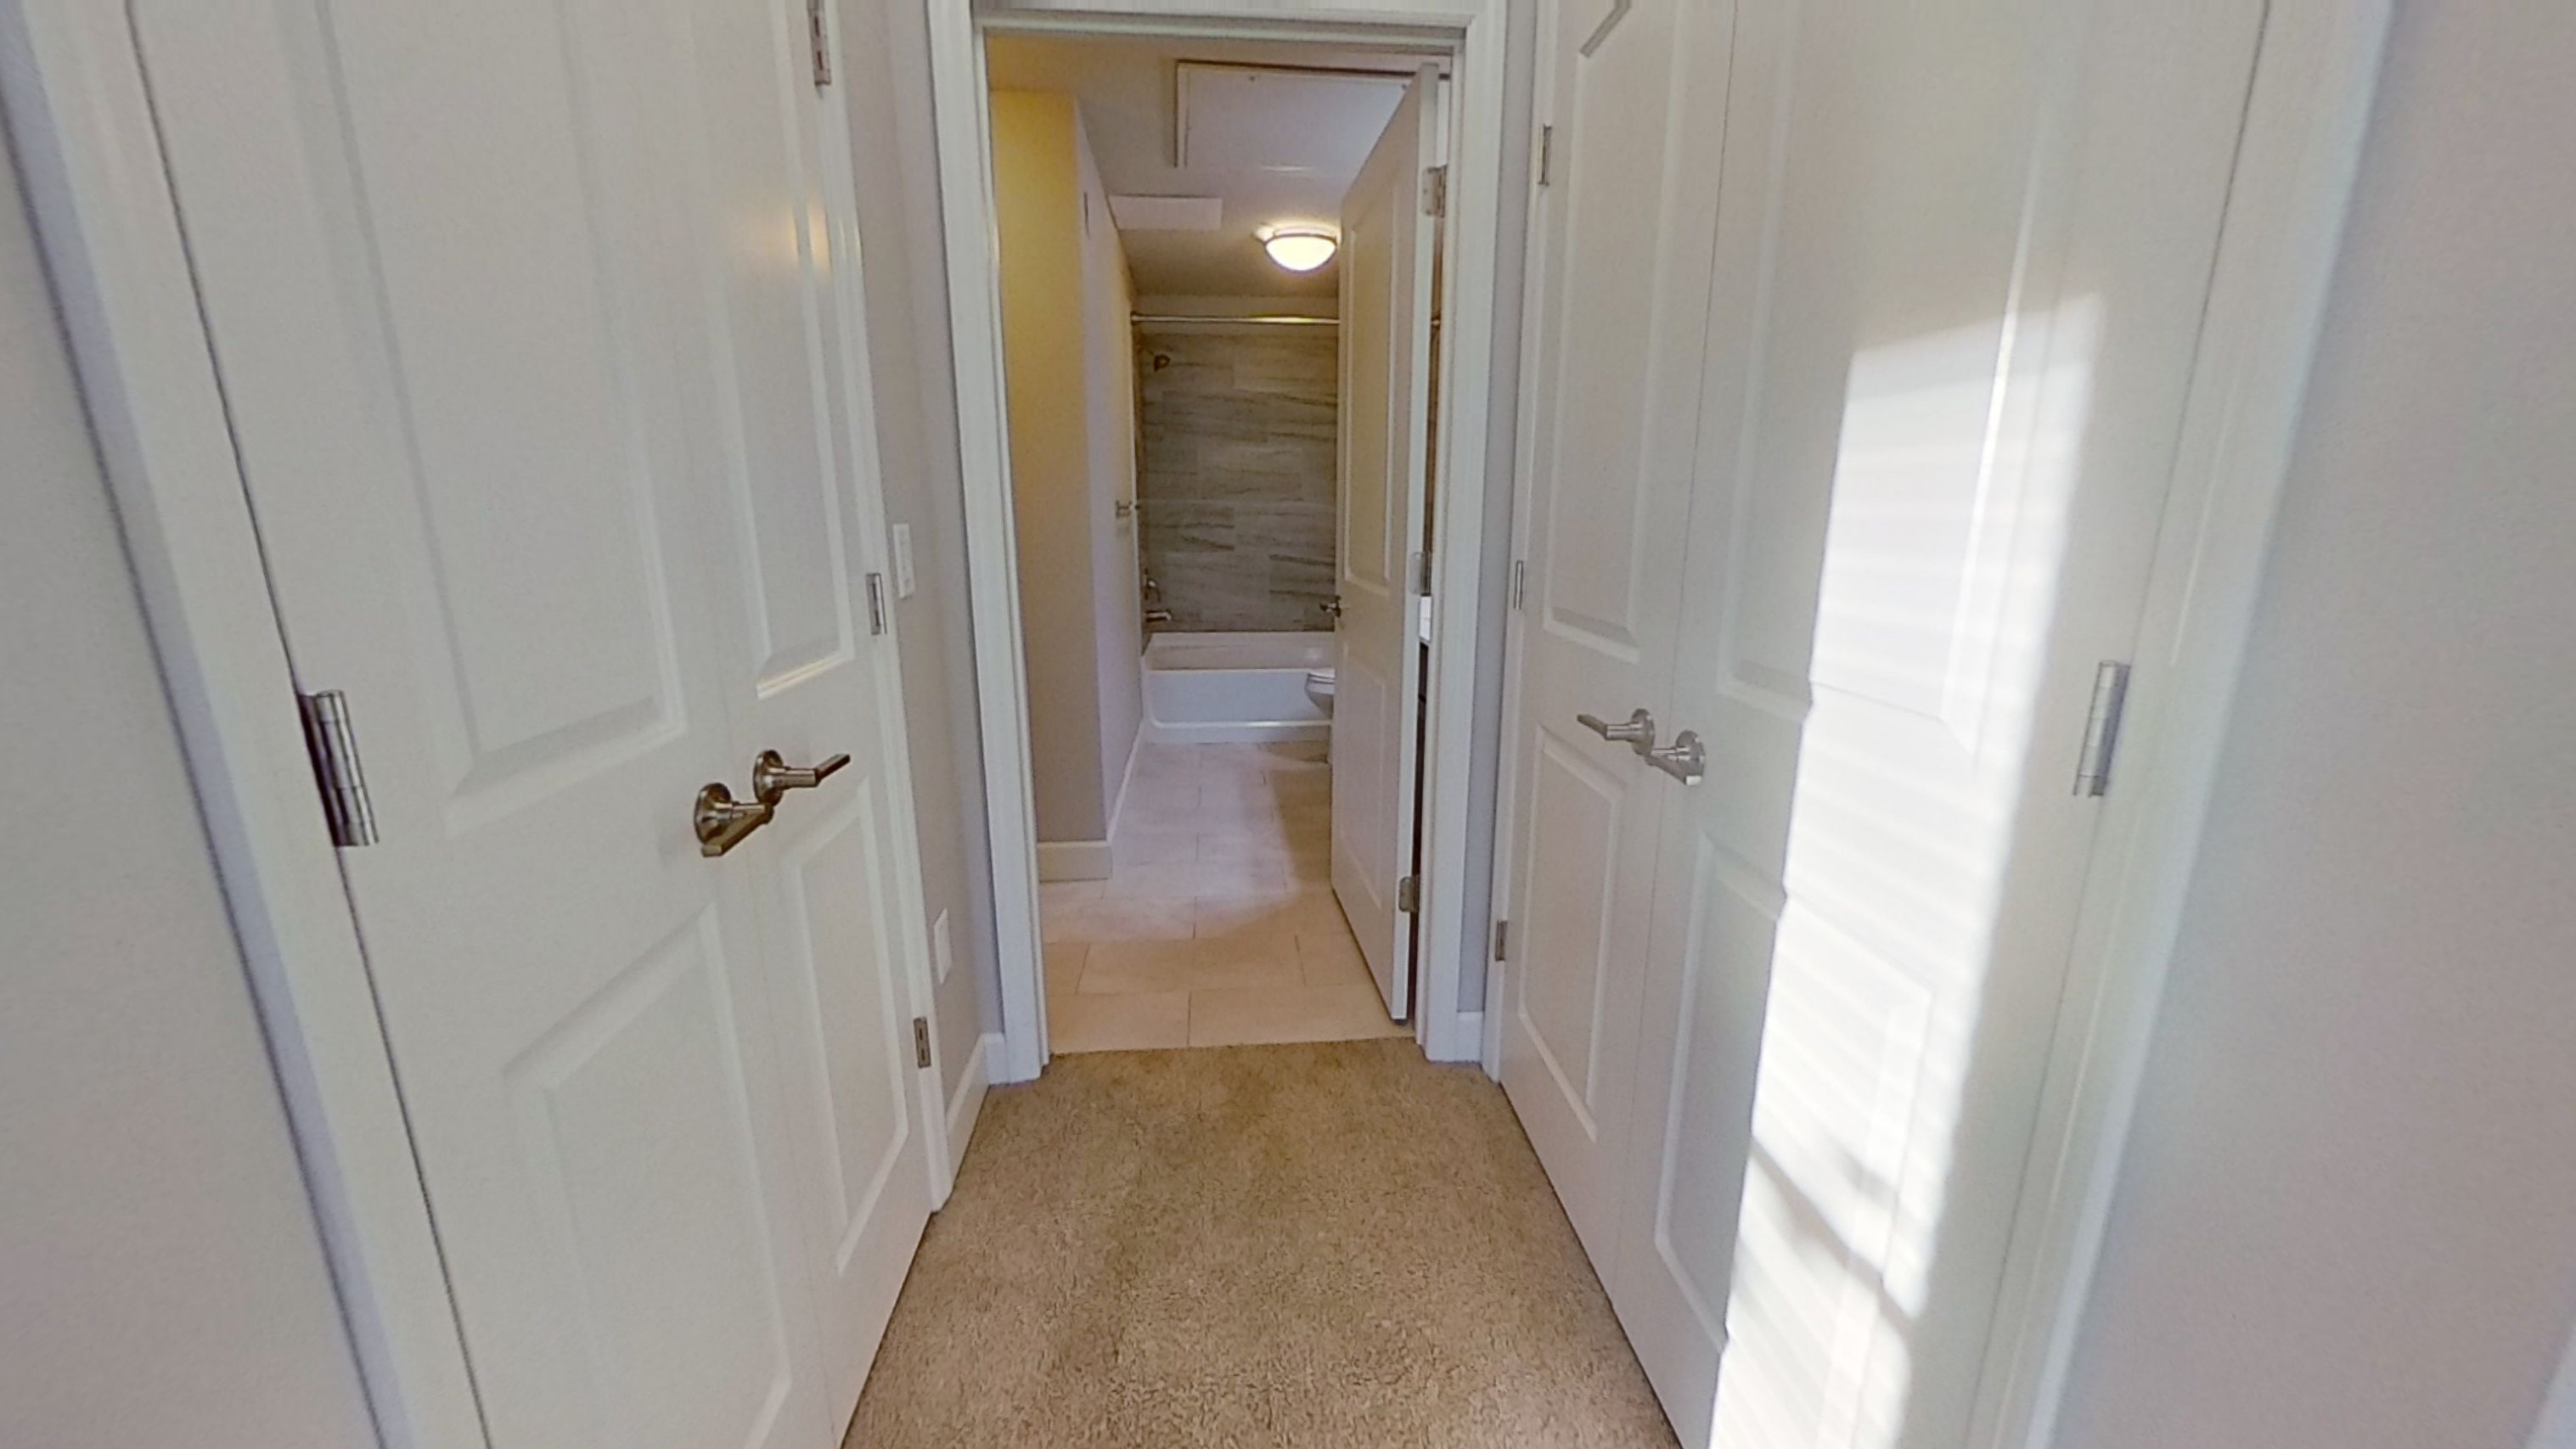 A2 Unit Interior at the Vue at Creve Coeur Apartments in Creve Coeur, MO